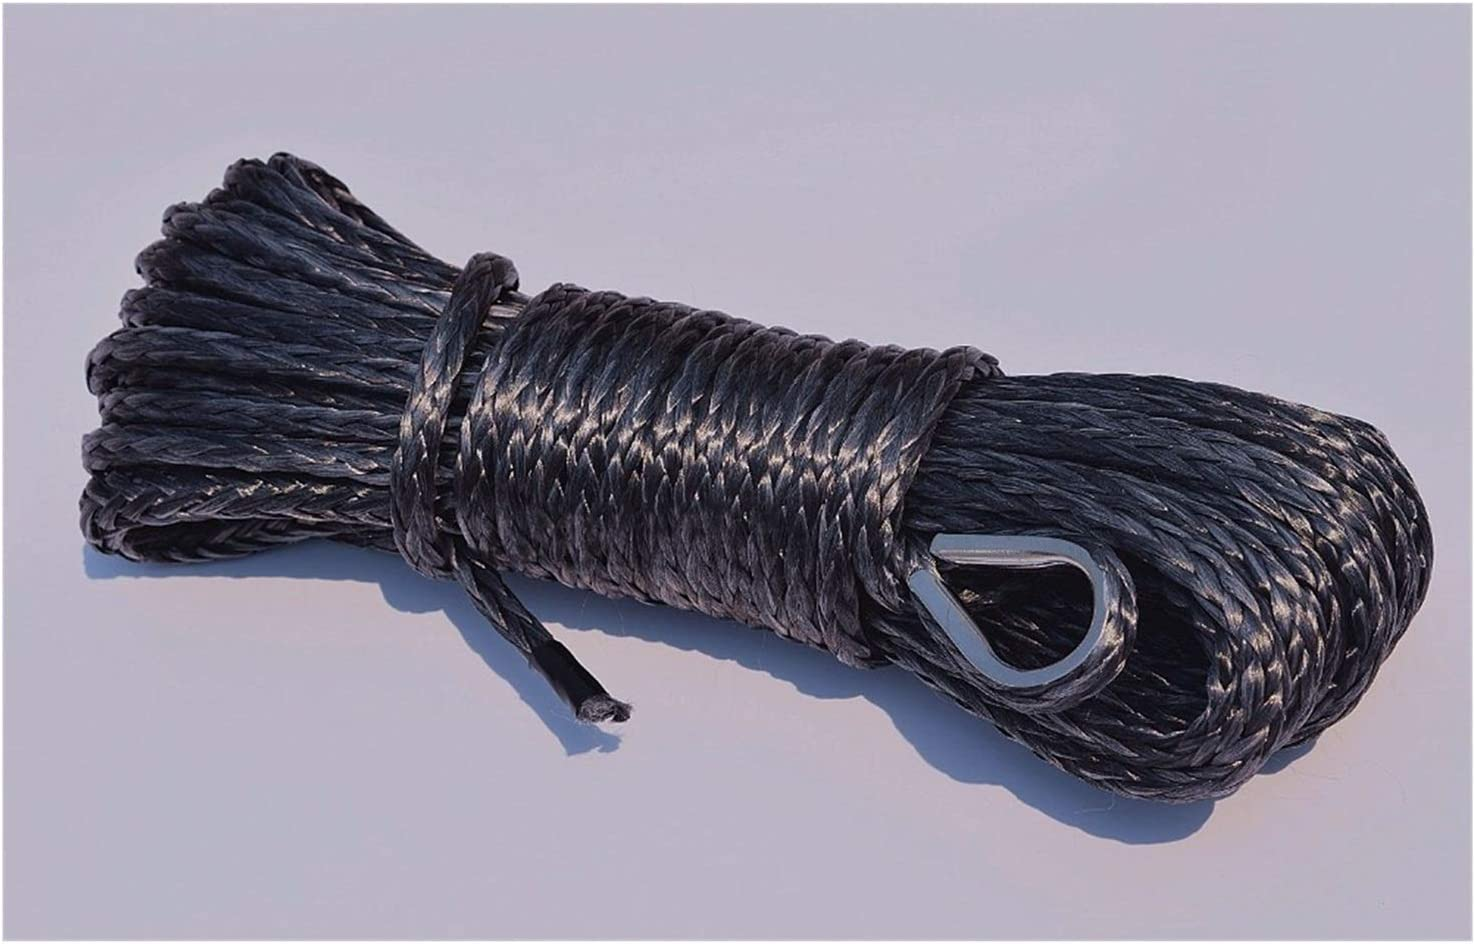 YHMY Towing Ropes Black 6mm15m Winch Synthe Finally resale start Fees free!! Cable Line ATV